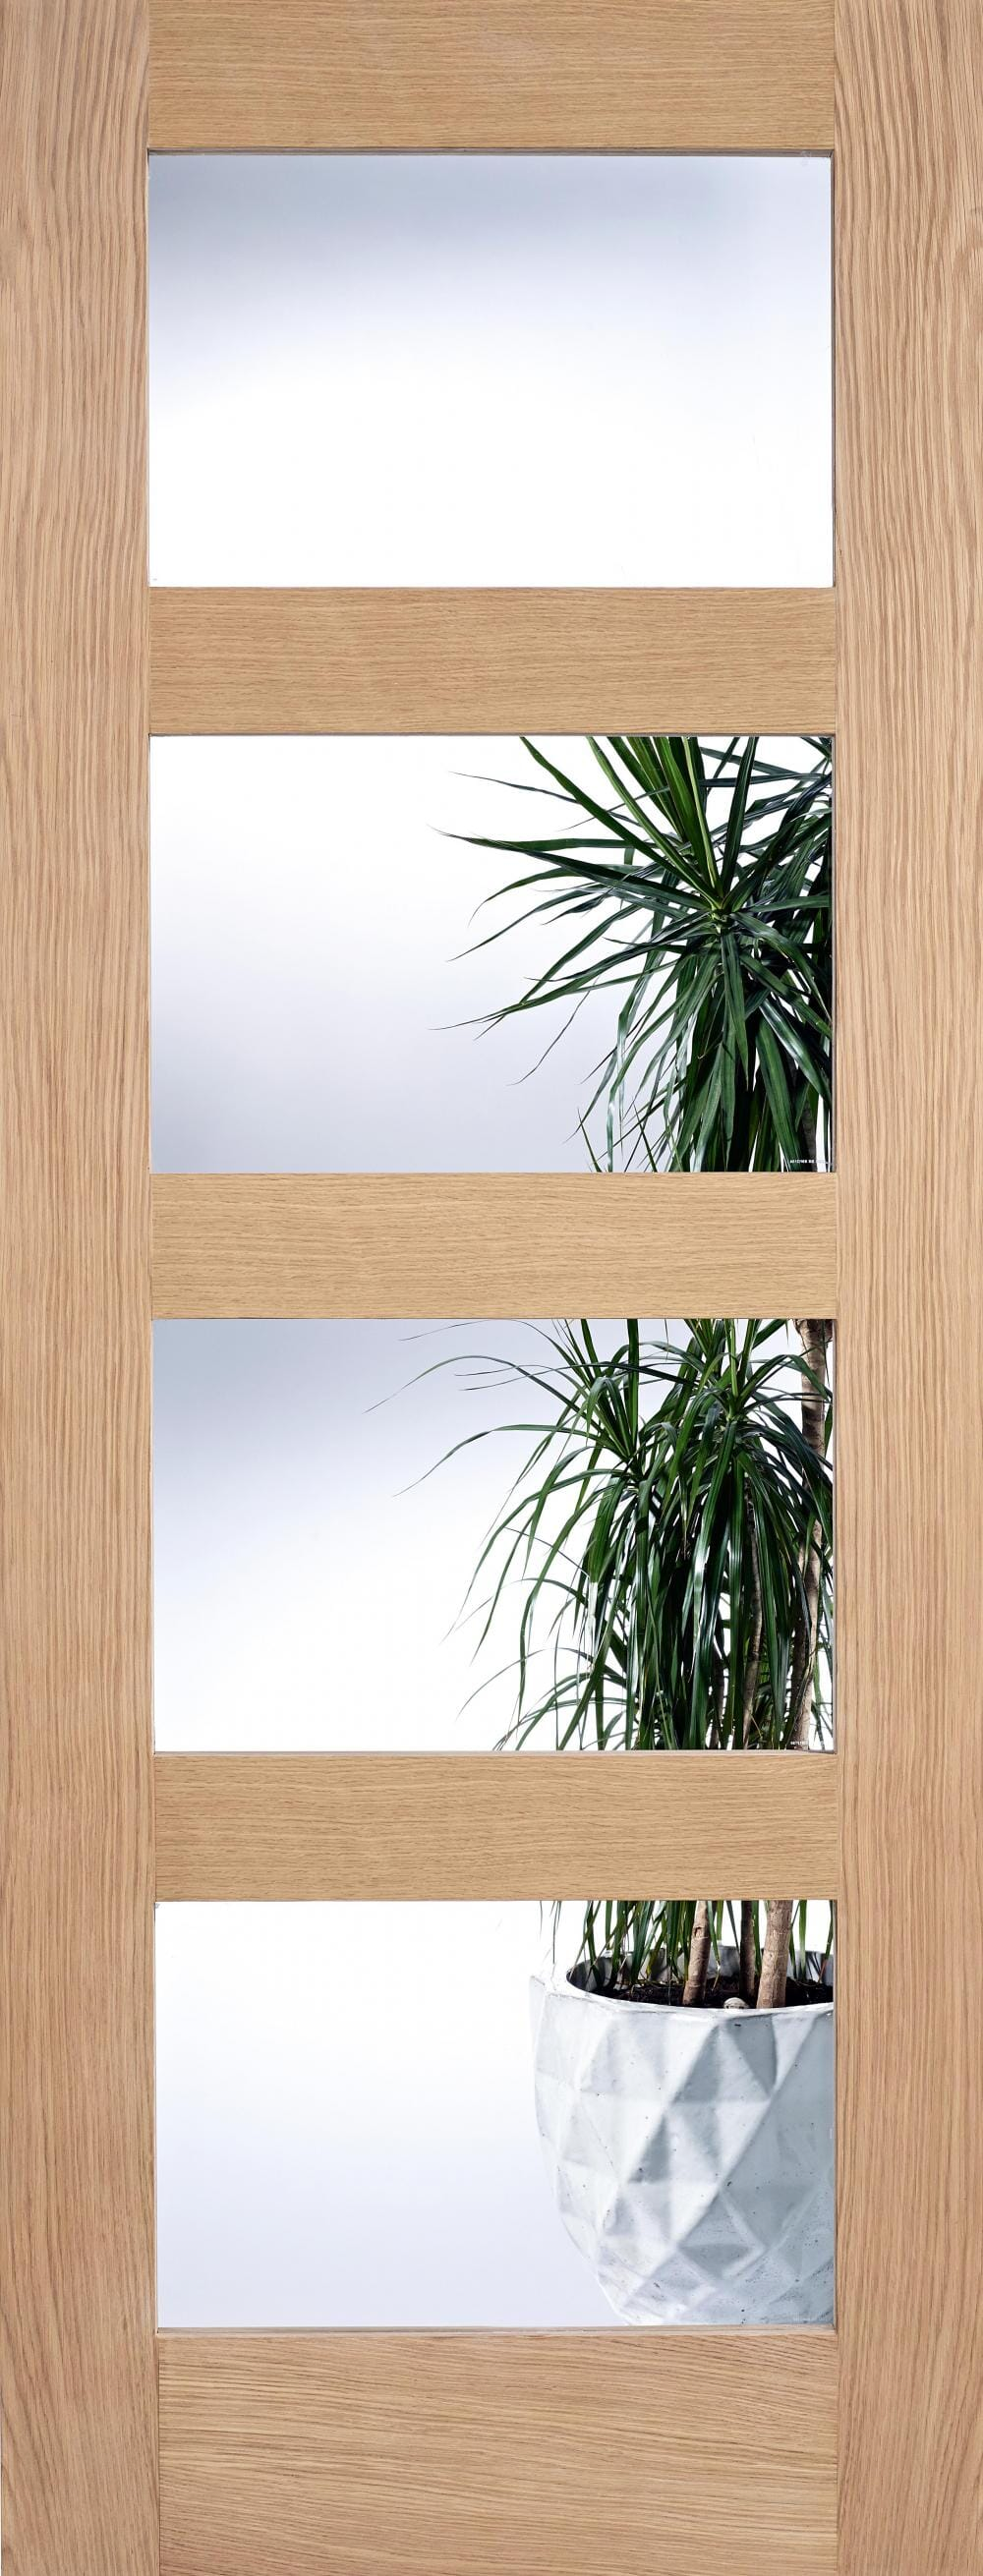 Oak Shaker 4l - Clear Glass Image